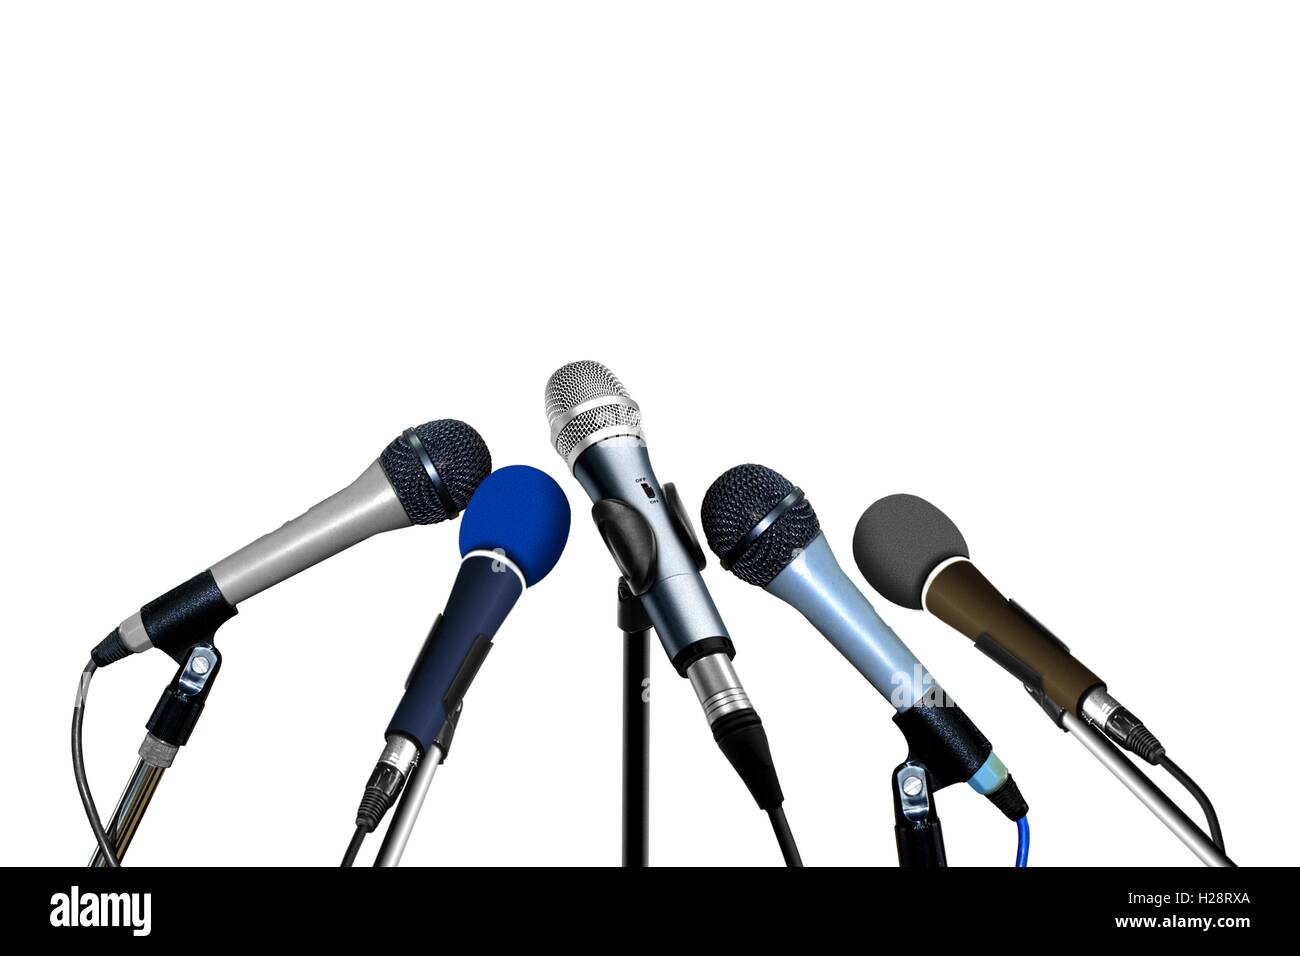 Press Conference Microphones over White - Stock Image